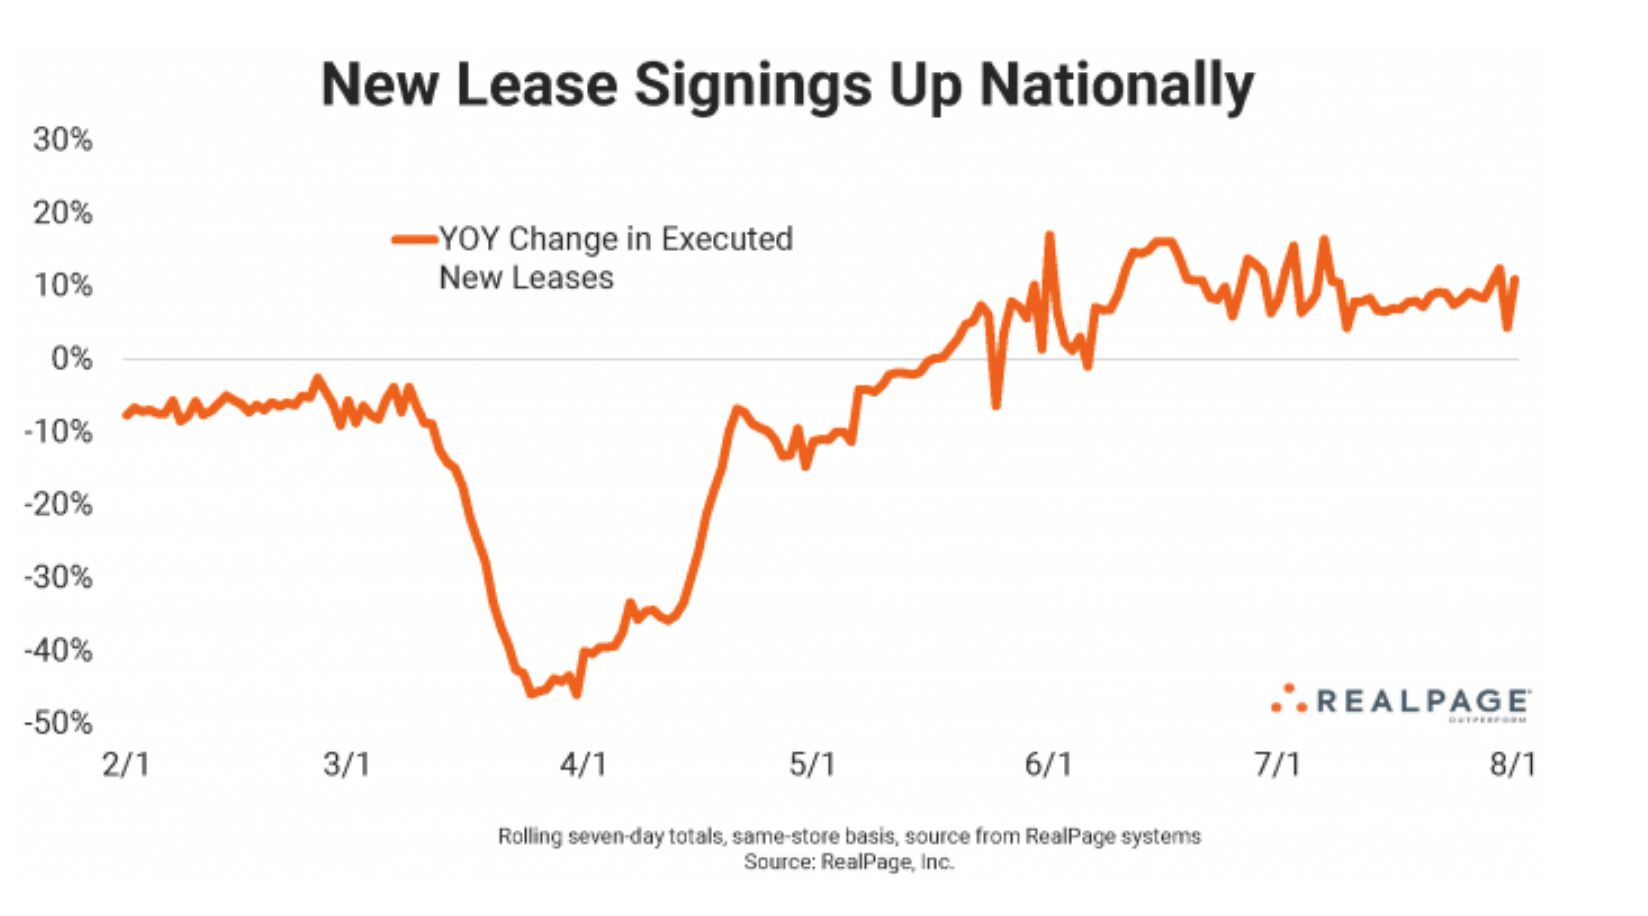 Nationwide apartment lease signings were up 11% year-over-year in July.